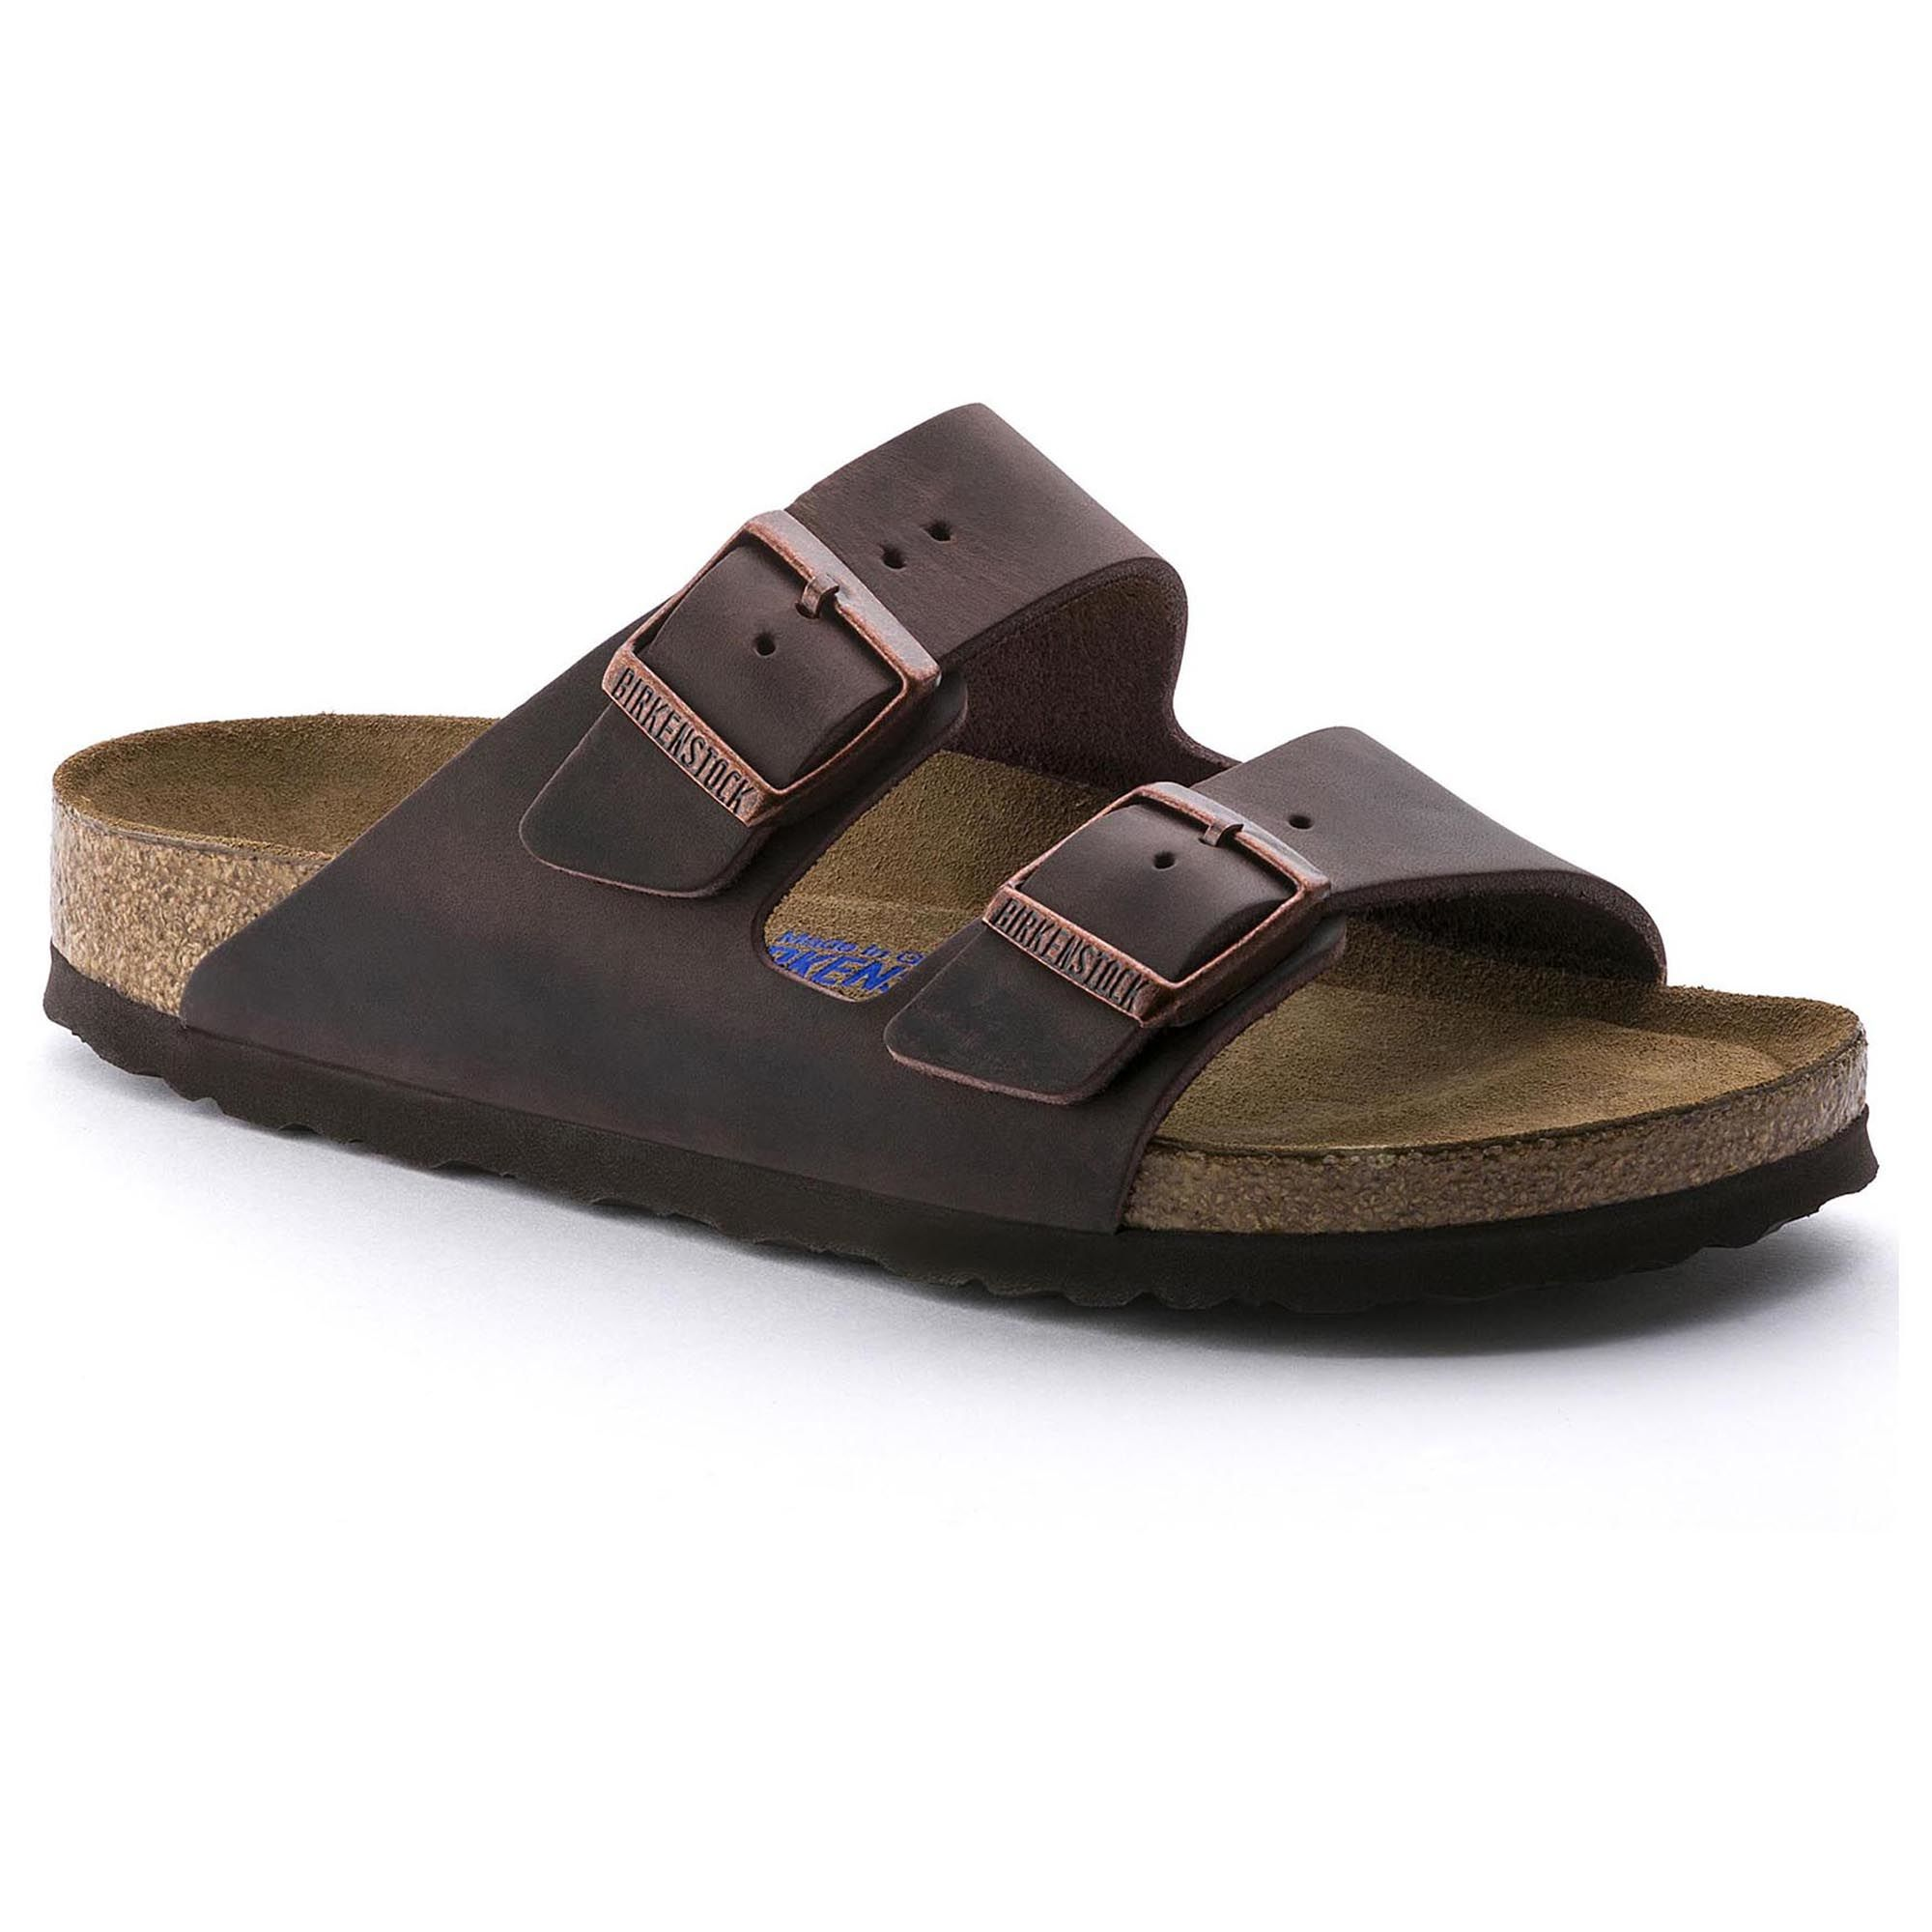 Arizona Soft Narrow Sandal